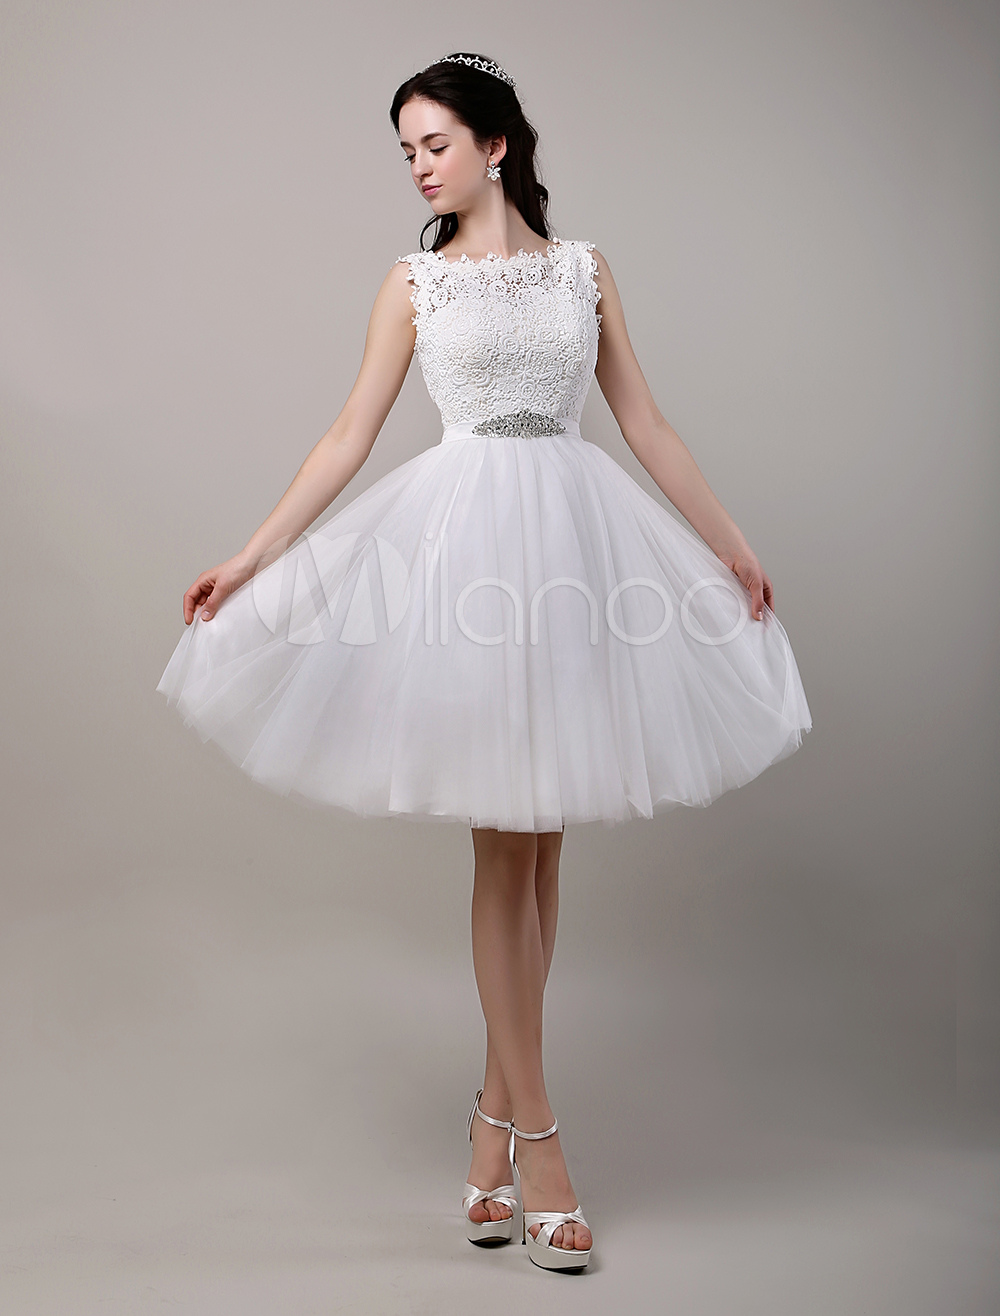 Buy A-Line/Princess Knee-Length Lace Bodice Tulle Wedding Dress With Beading Sequins Sash for $193.49 in Milanoo store